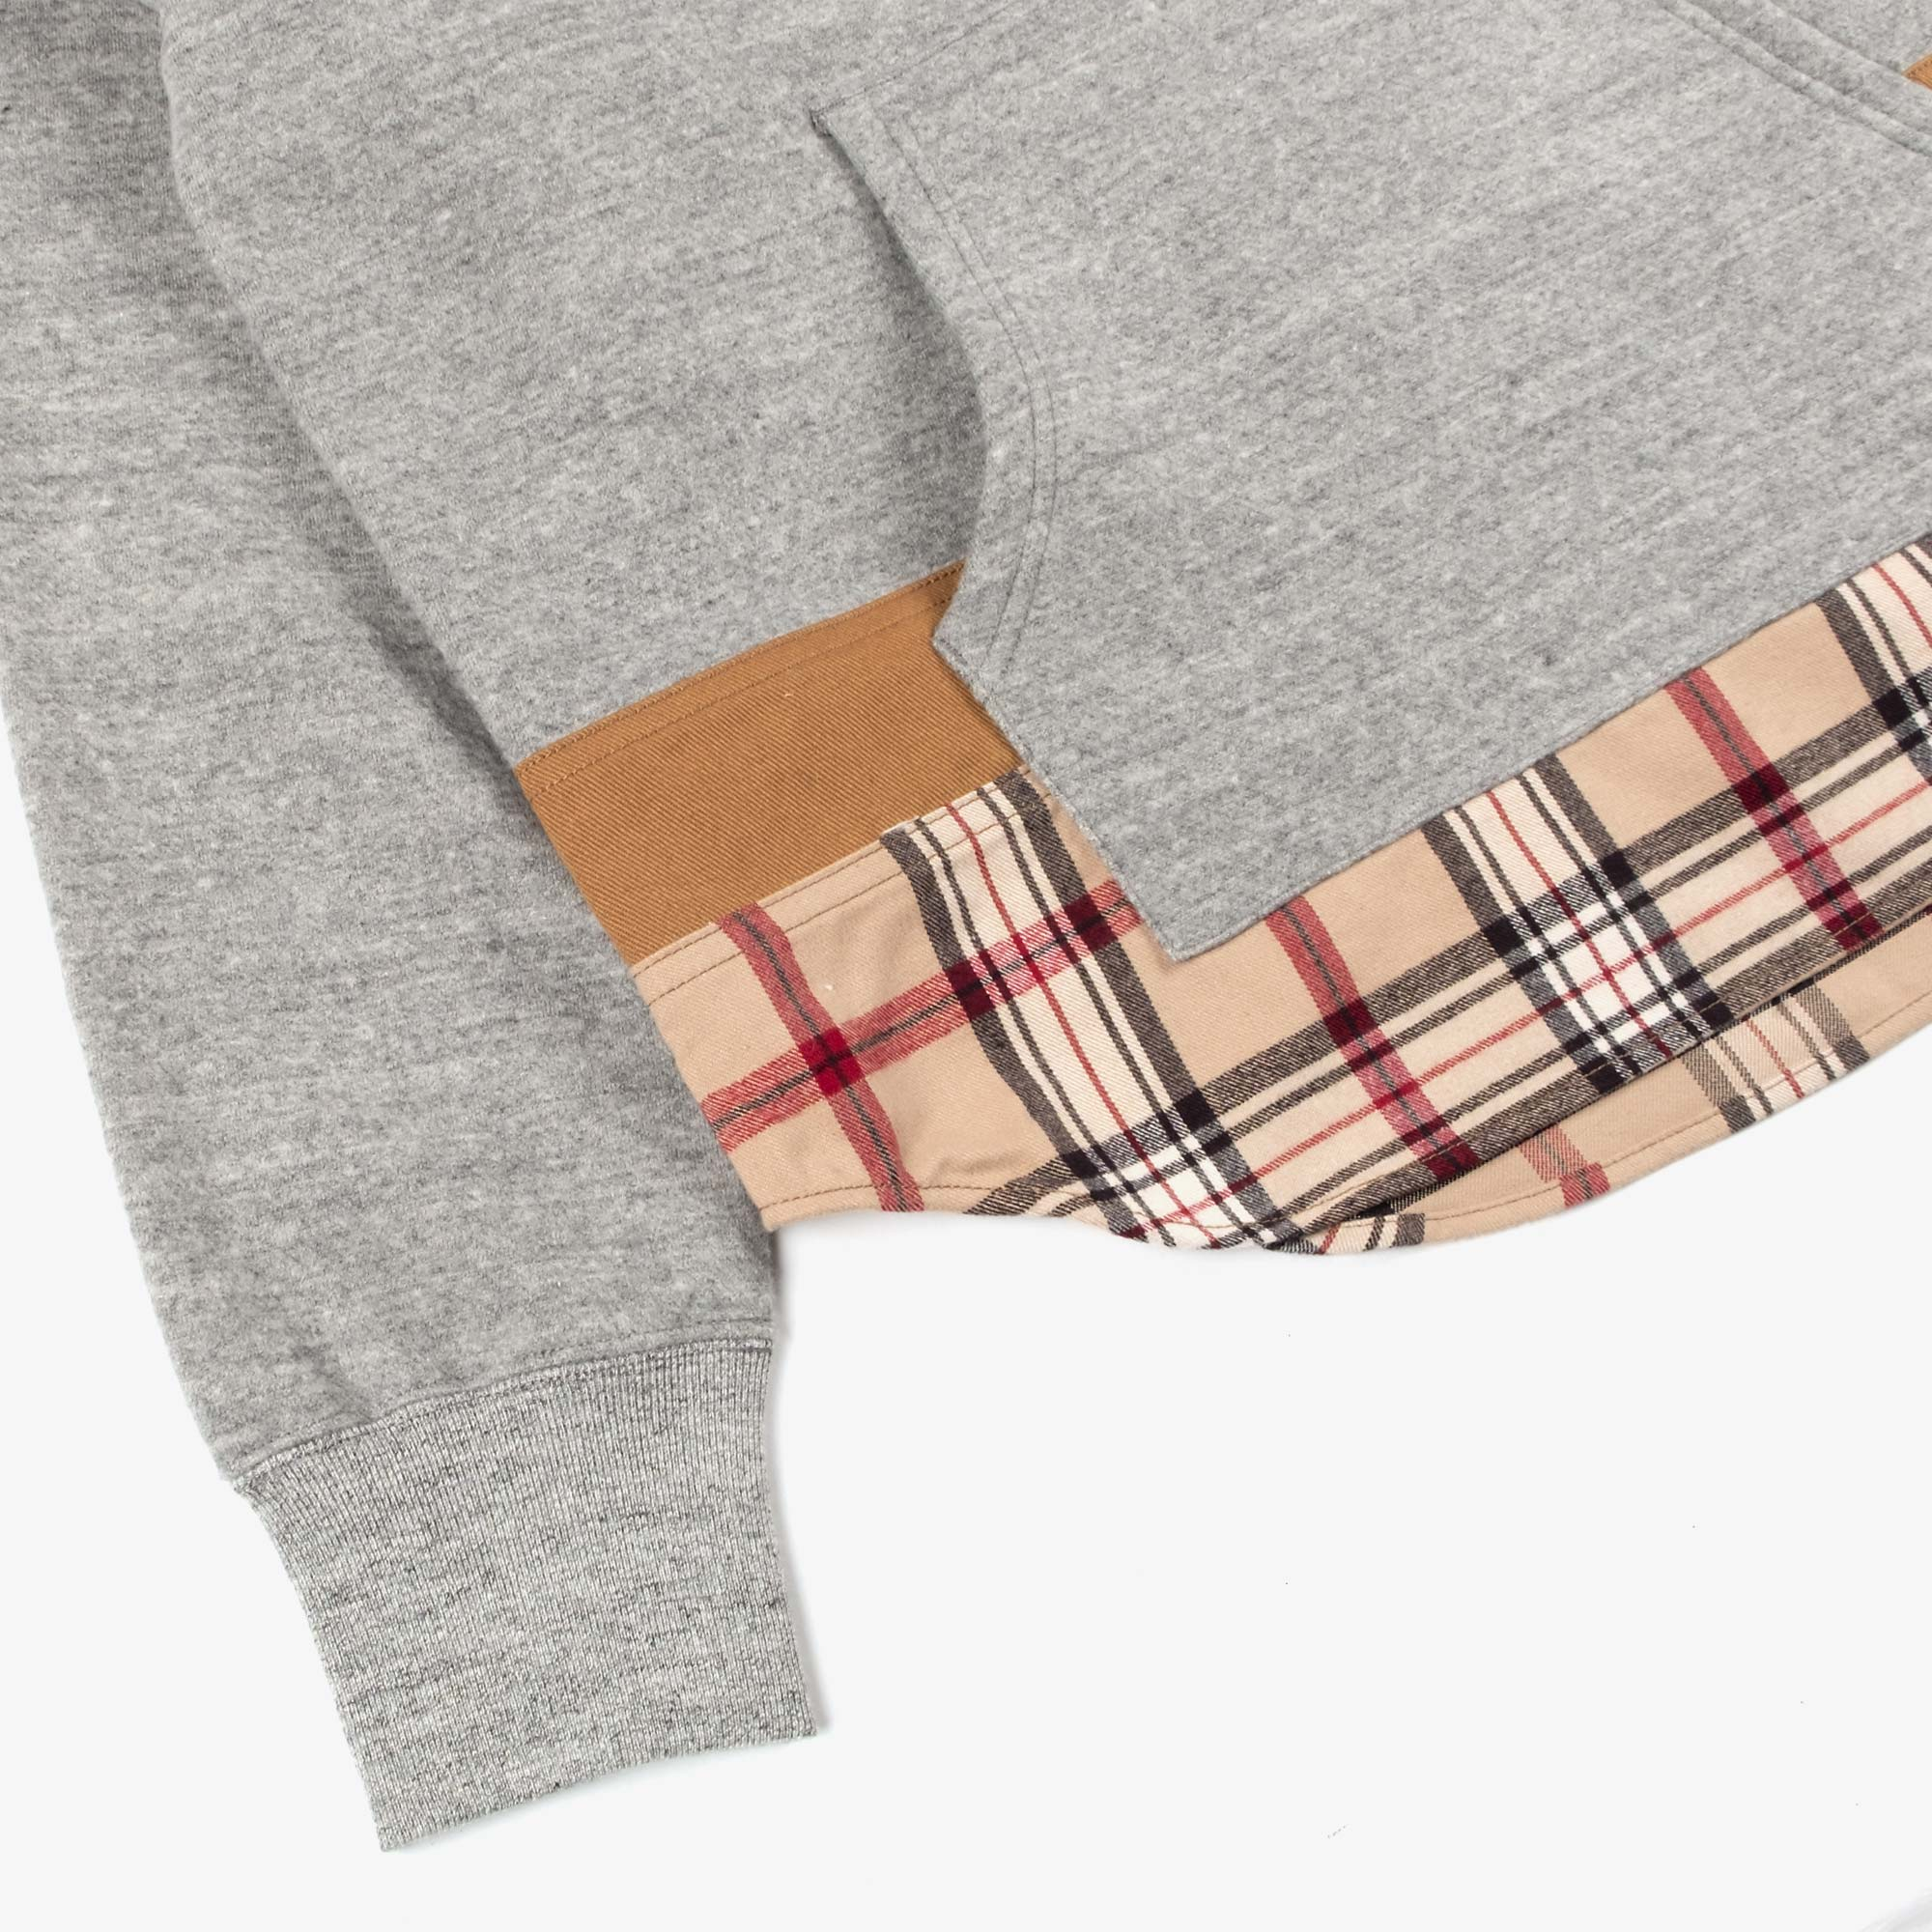 Comme des Garçons - Homme Checked Hem Pullover Hooded Sweat T004 - Grey / Multi 3